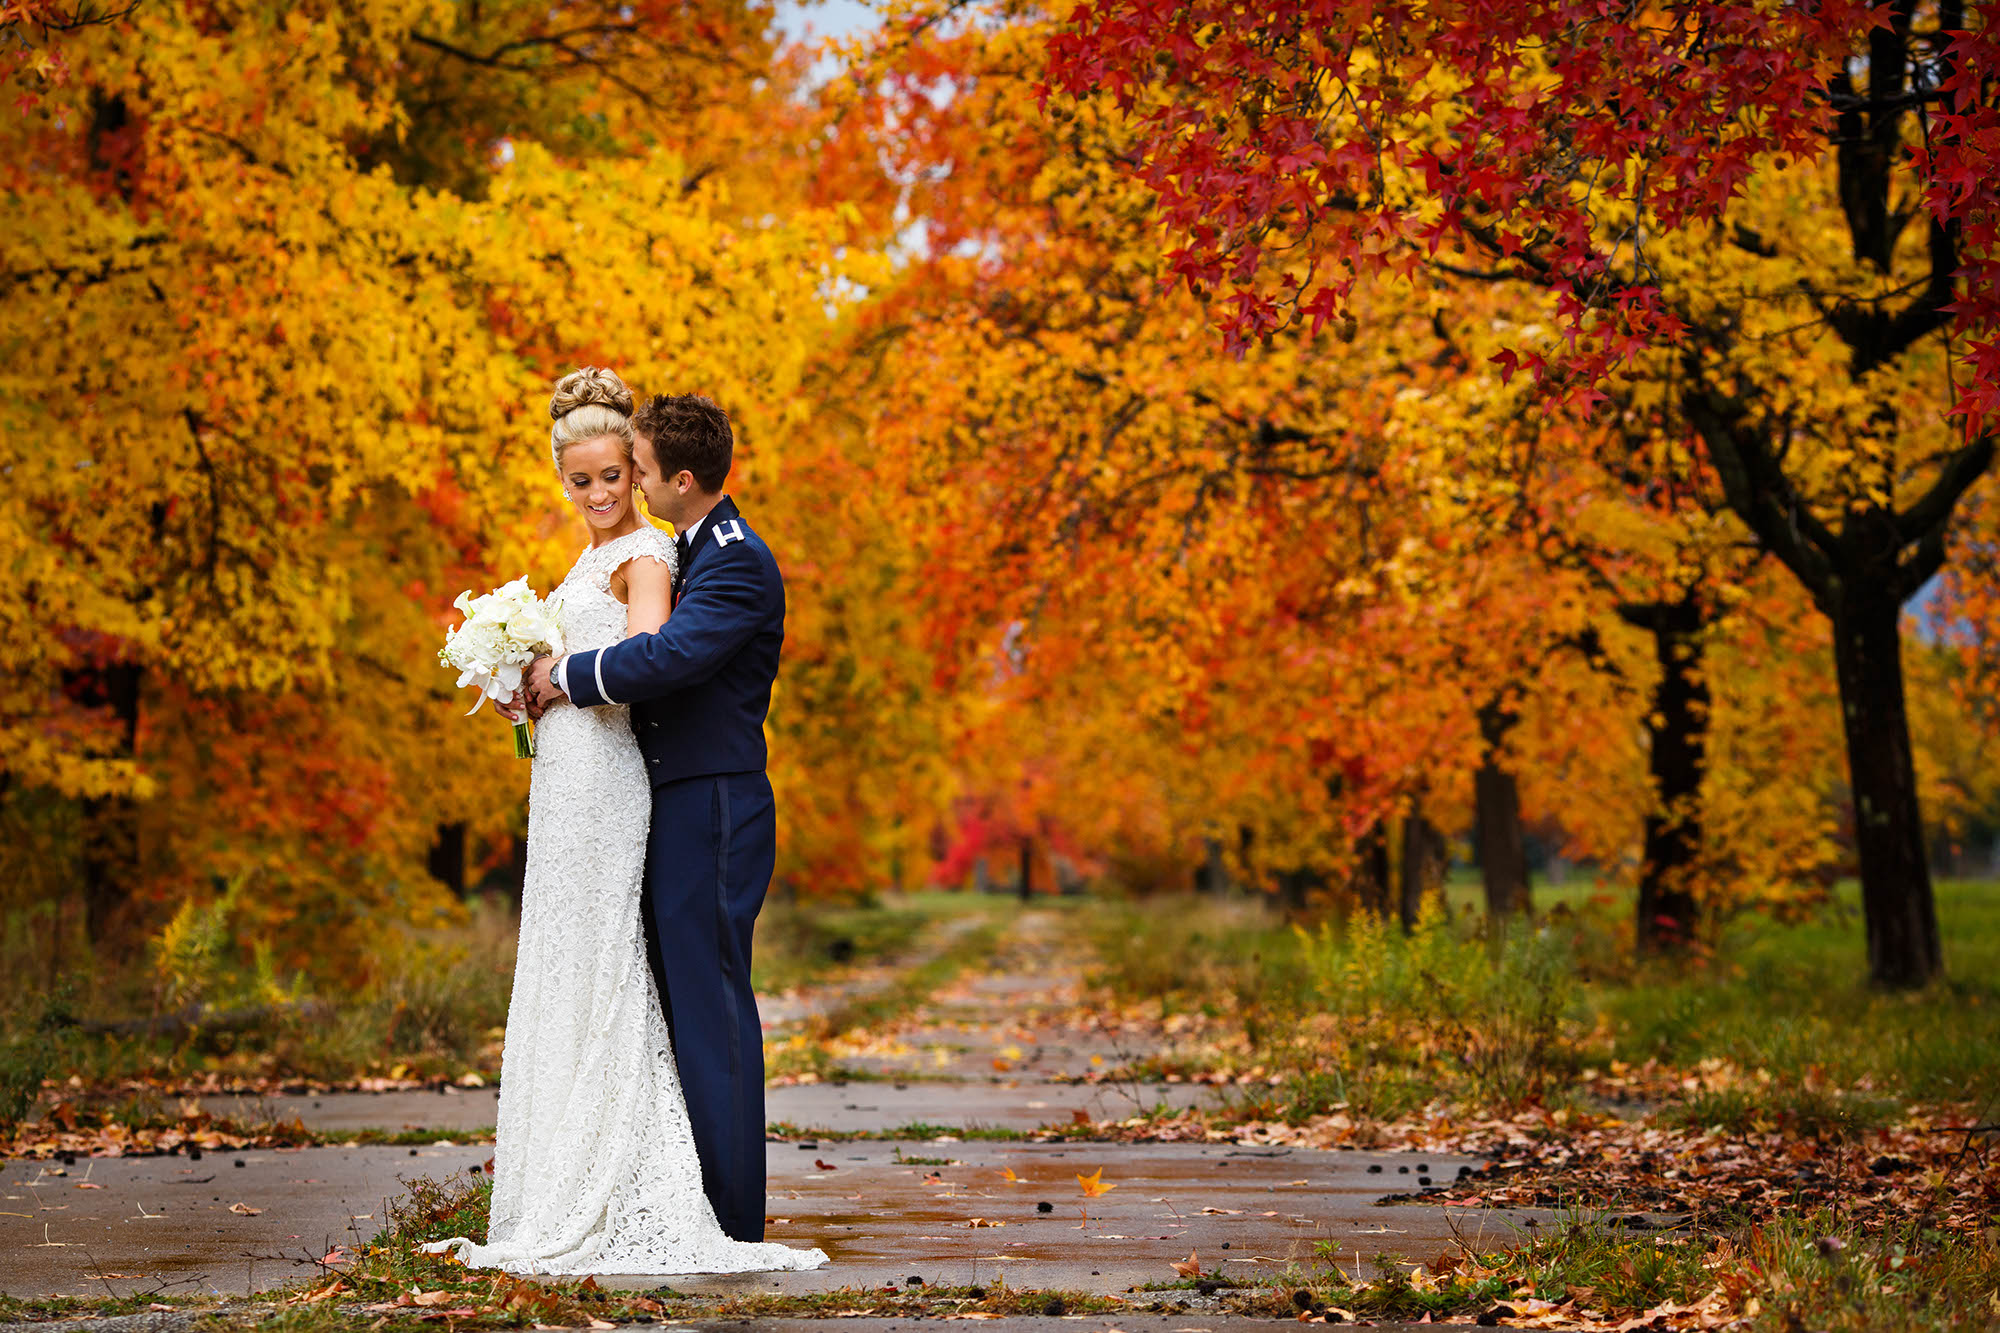 A vibrant photo taken of a bride and groom during the height of the fall foliage with bright red, orange, and yellow leaves in the background while standing on an abandoned driveway near the Cleveland Hopkins Airport in Cleveland, Ohio.